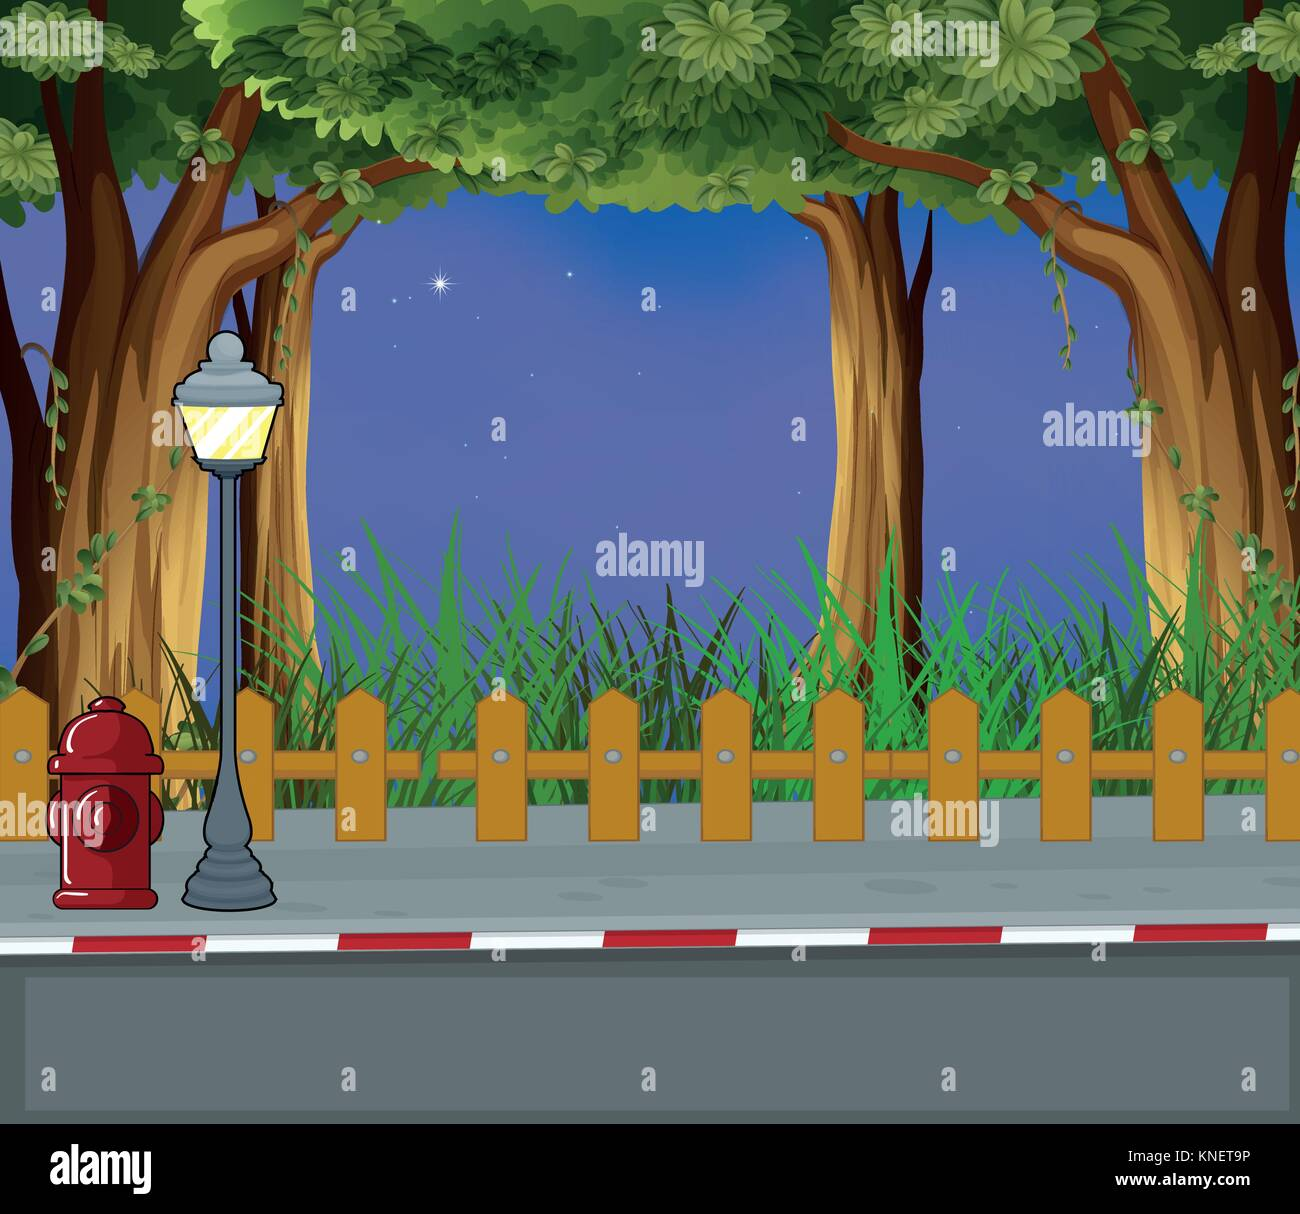 Illustration of the evening view of the street - Stock Vector